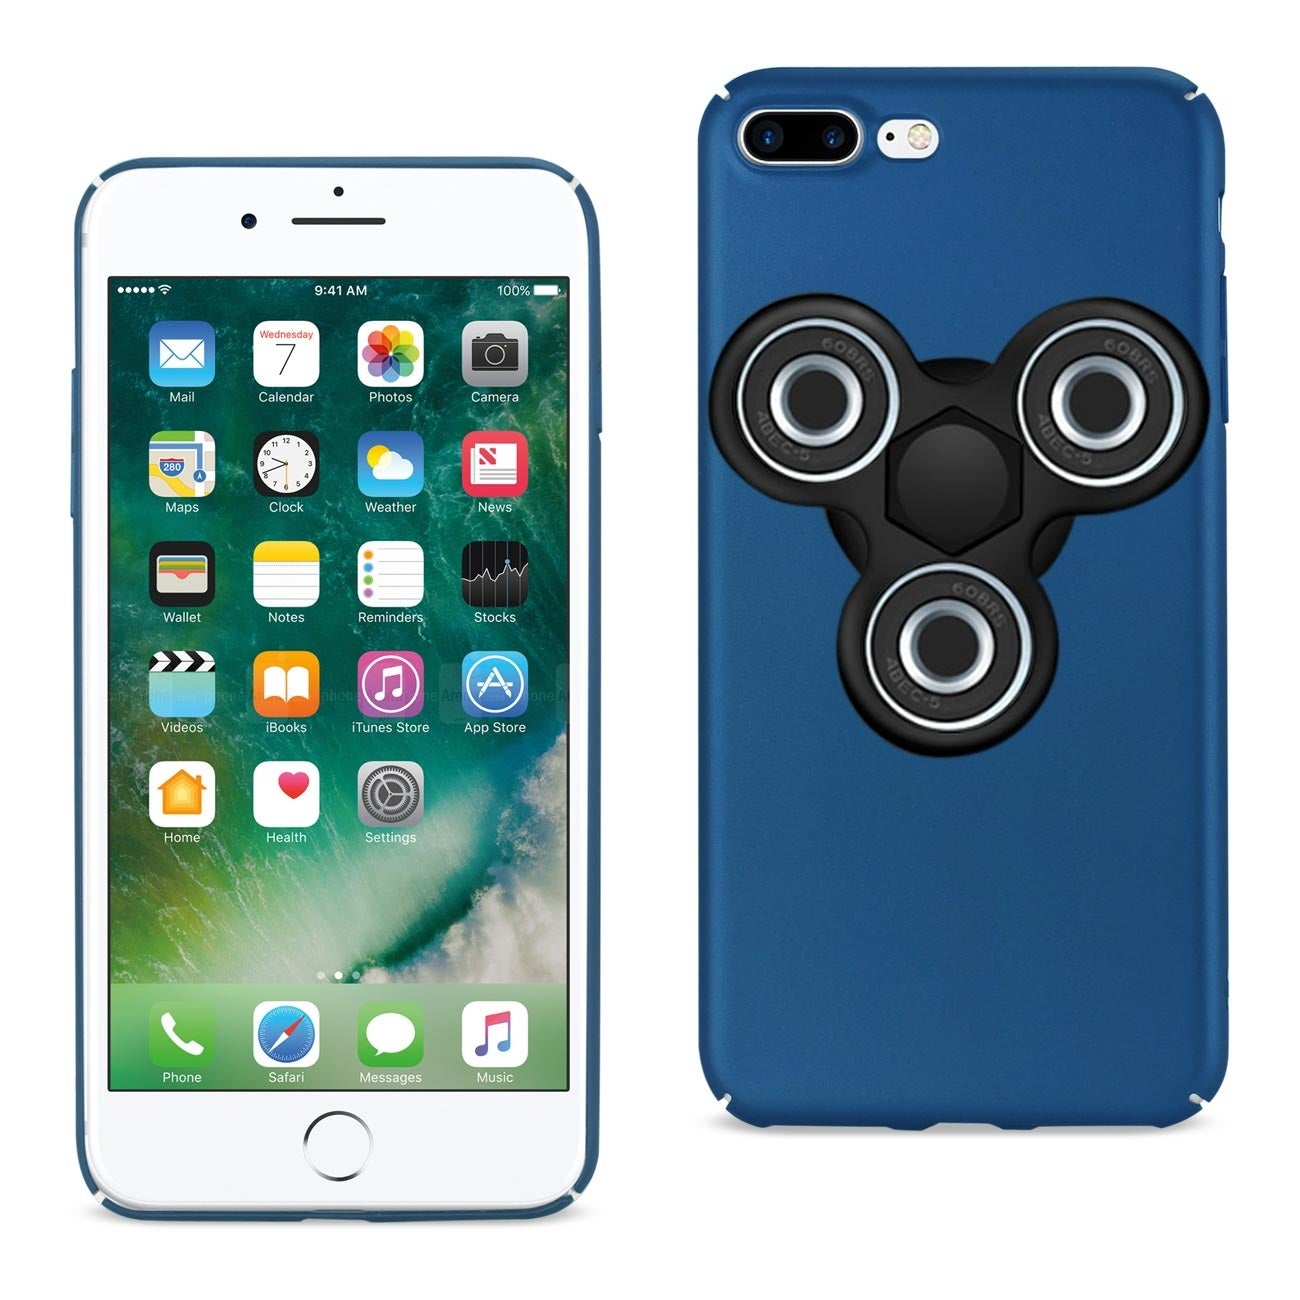 timeless design 770ef 96ee3 Reiko Iphone 7 Plus/ 6 Plus/ 6S Plus Case With Led Fidget Spinner Clip On  In Navy